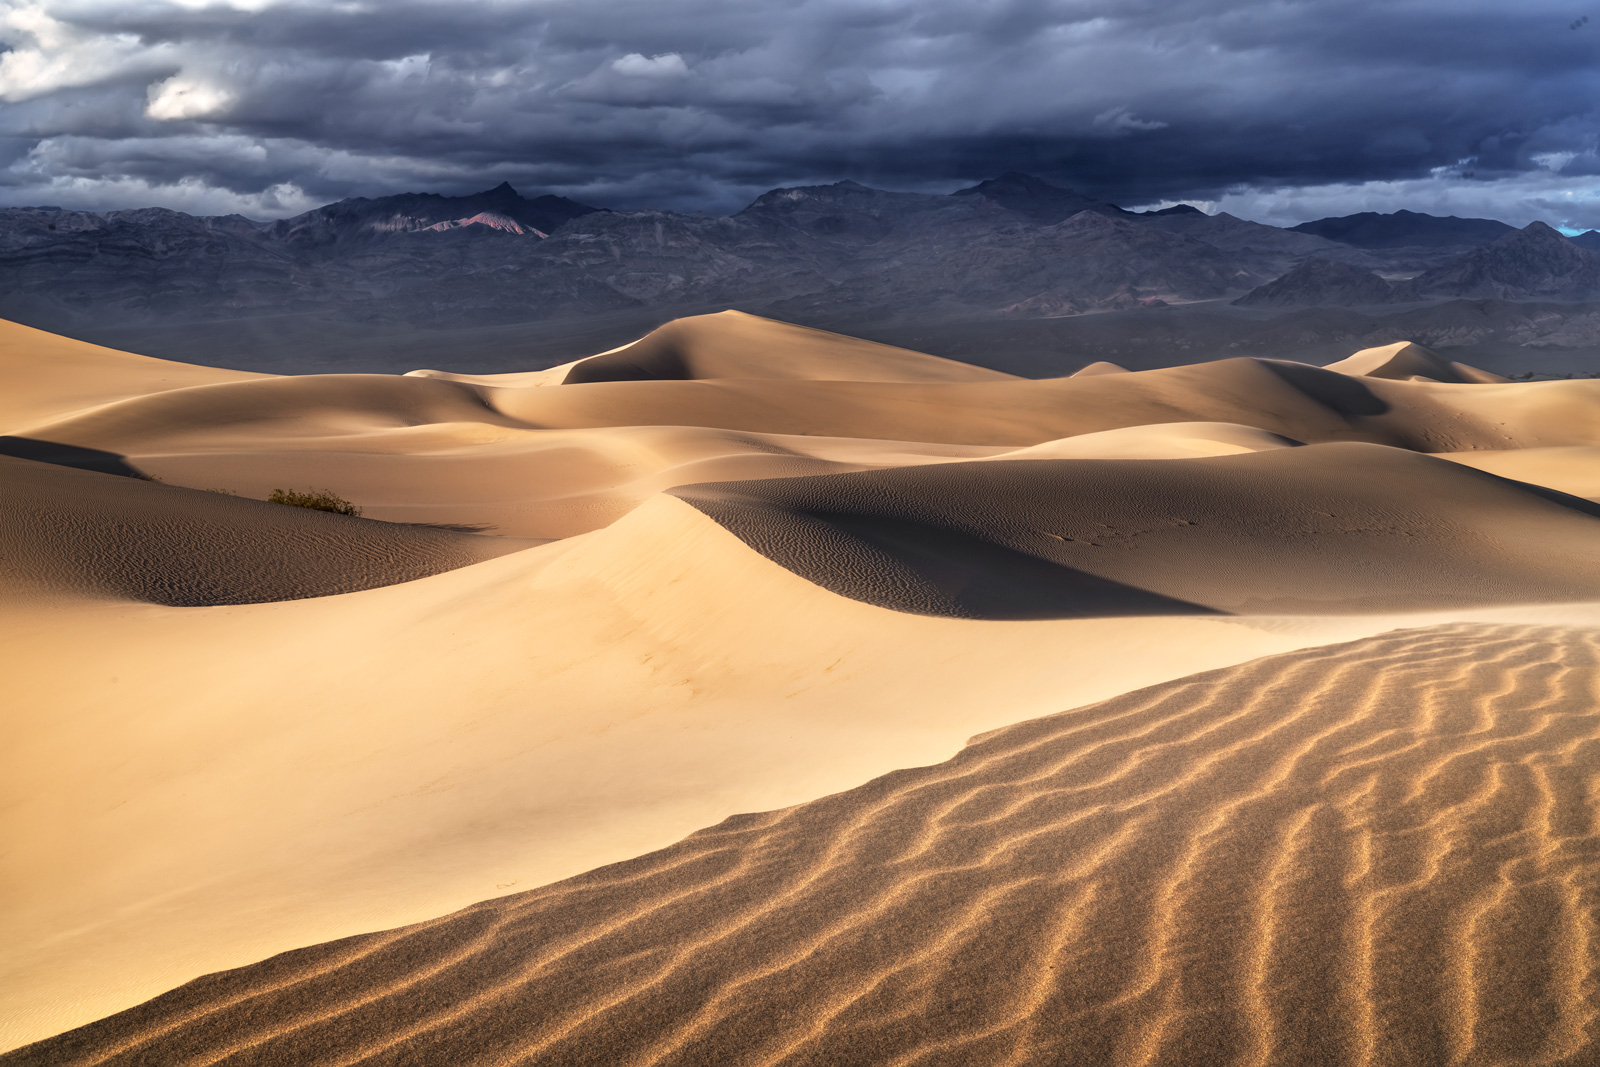 California, Death Valley, Sand, Dunes, limited edition, photograph, fine art, landscape, photo